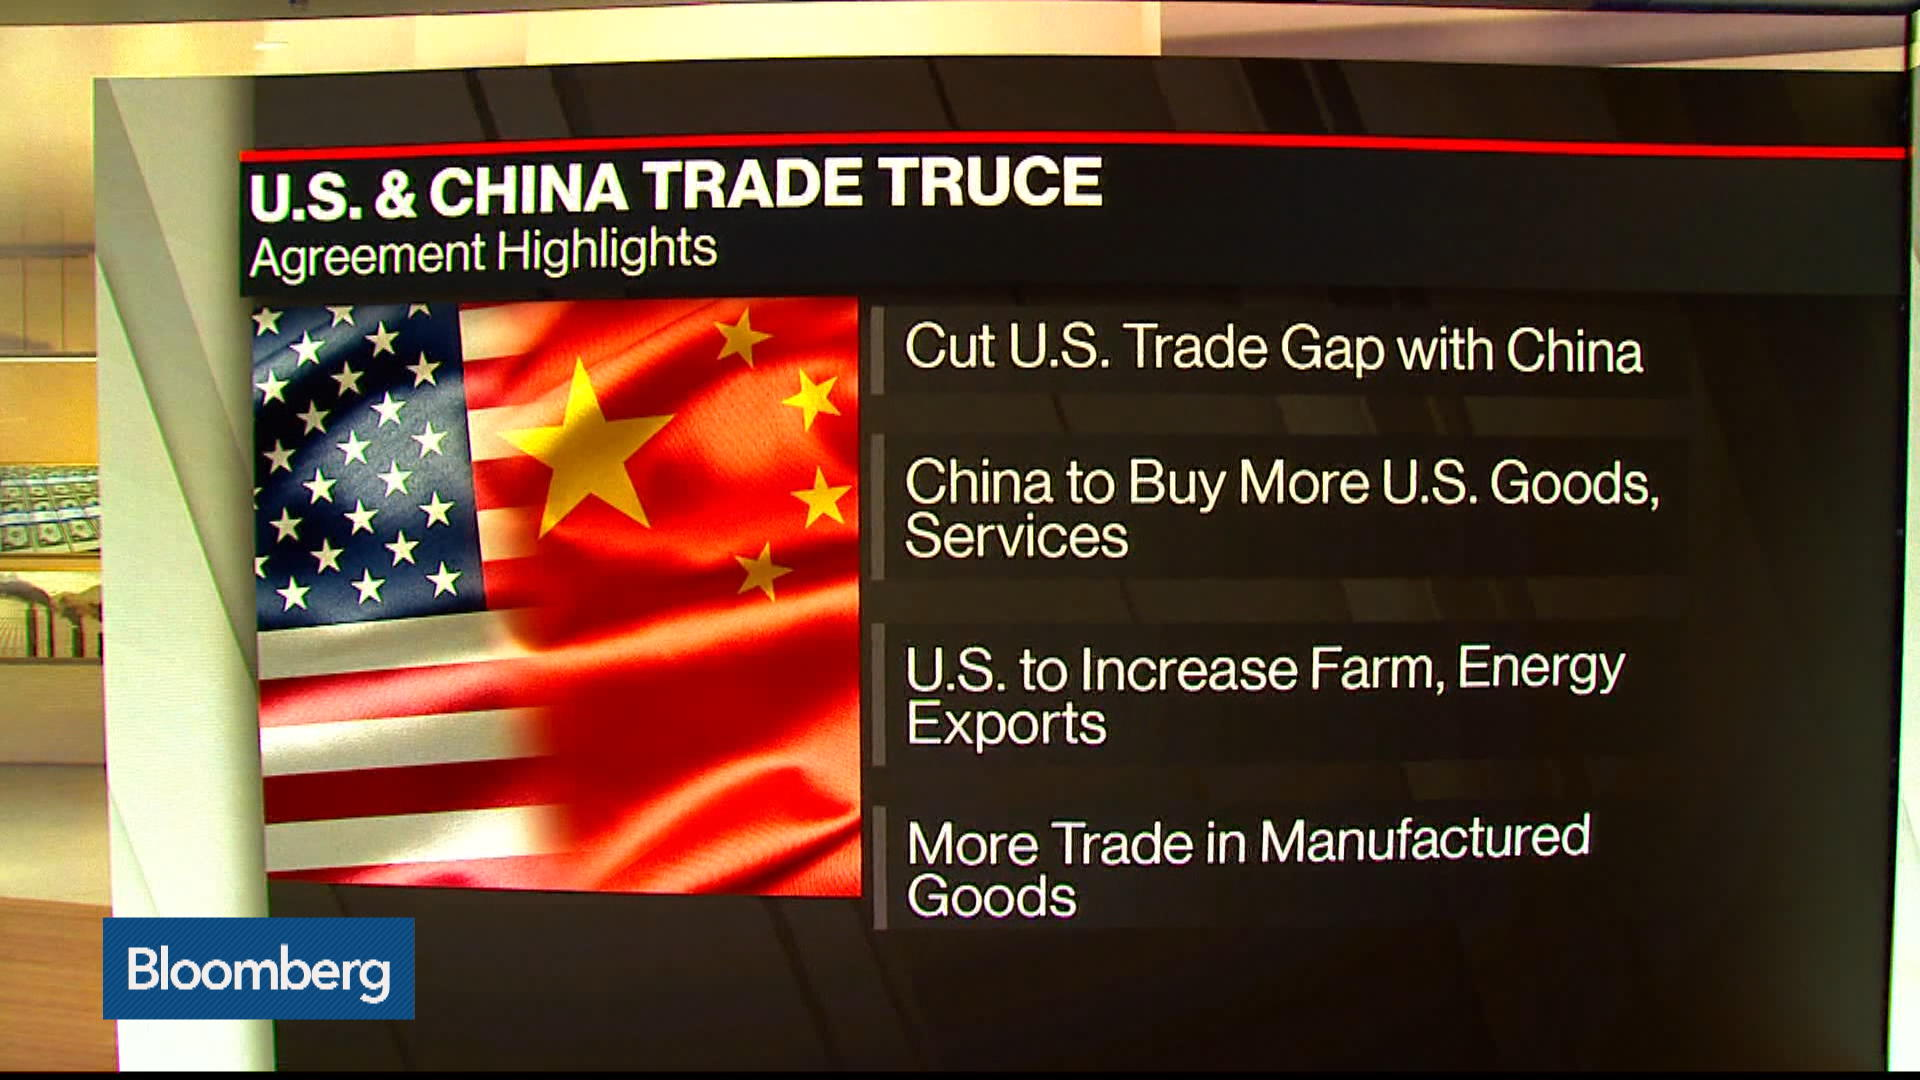 chinas trade disputes The senators, led by max baucus and chuck grassley, commented on the trade disputes by saying that the the us-china economic and strategic relationship is vitally important.